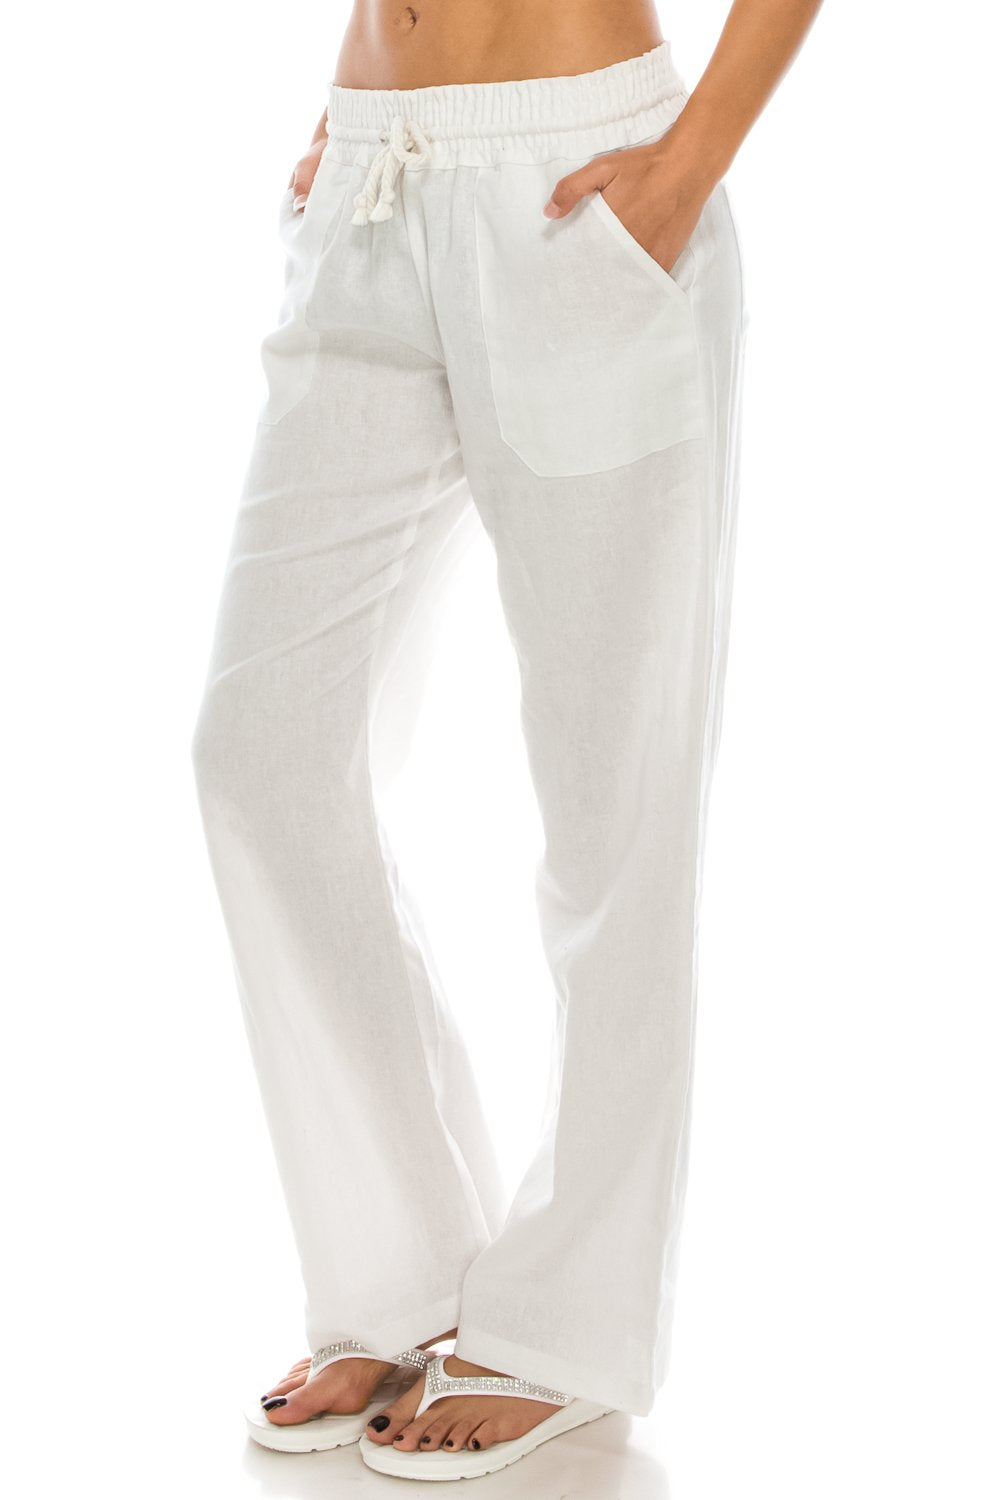 Poplooks Women's Beachside Soft Palazzo Style Linen Pants (Medium, White)